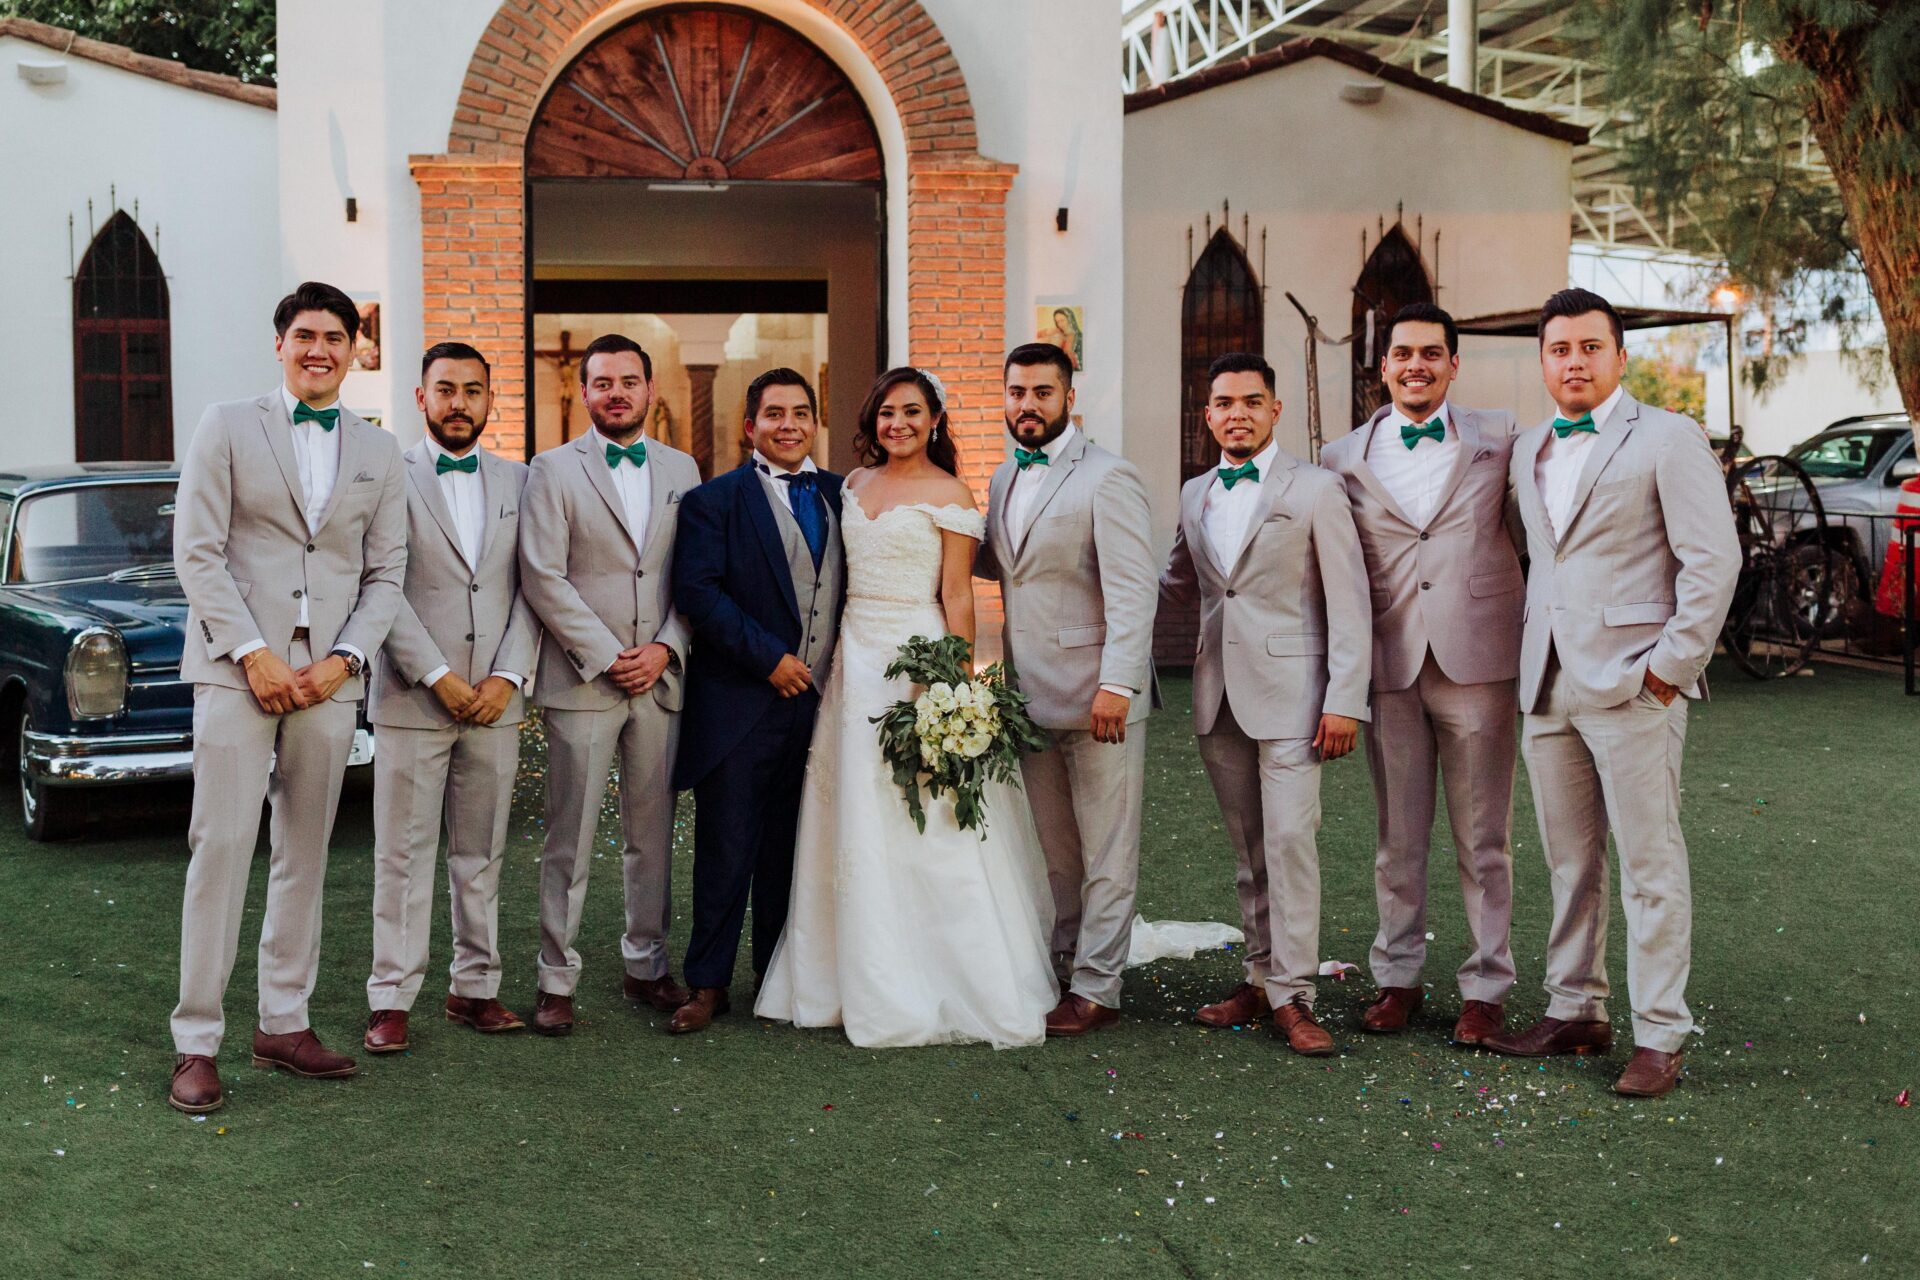 javier_noriega_fotografo_bodas_torreon_coahuila_zacatecas_wedding_photographer51a